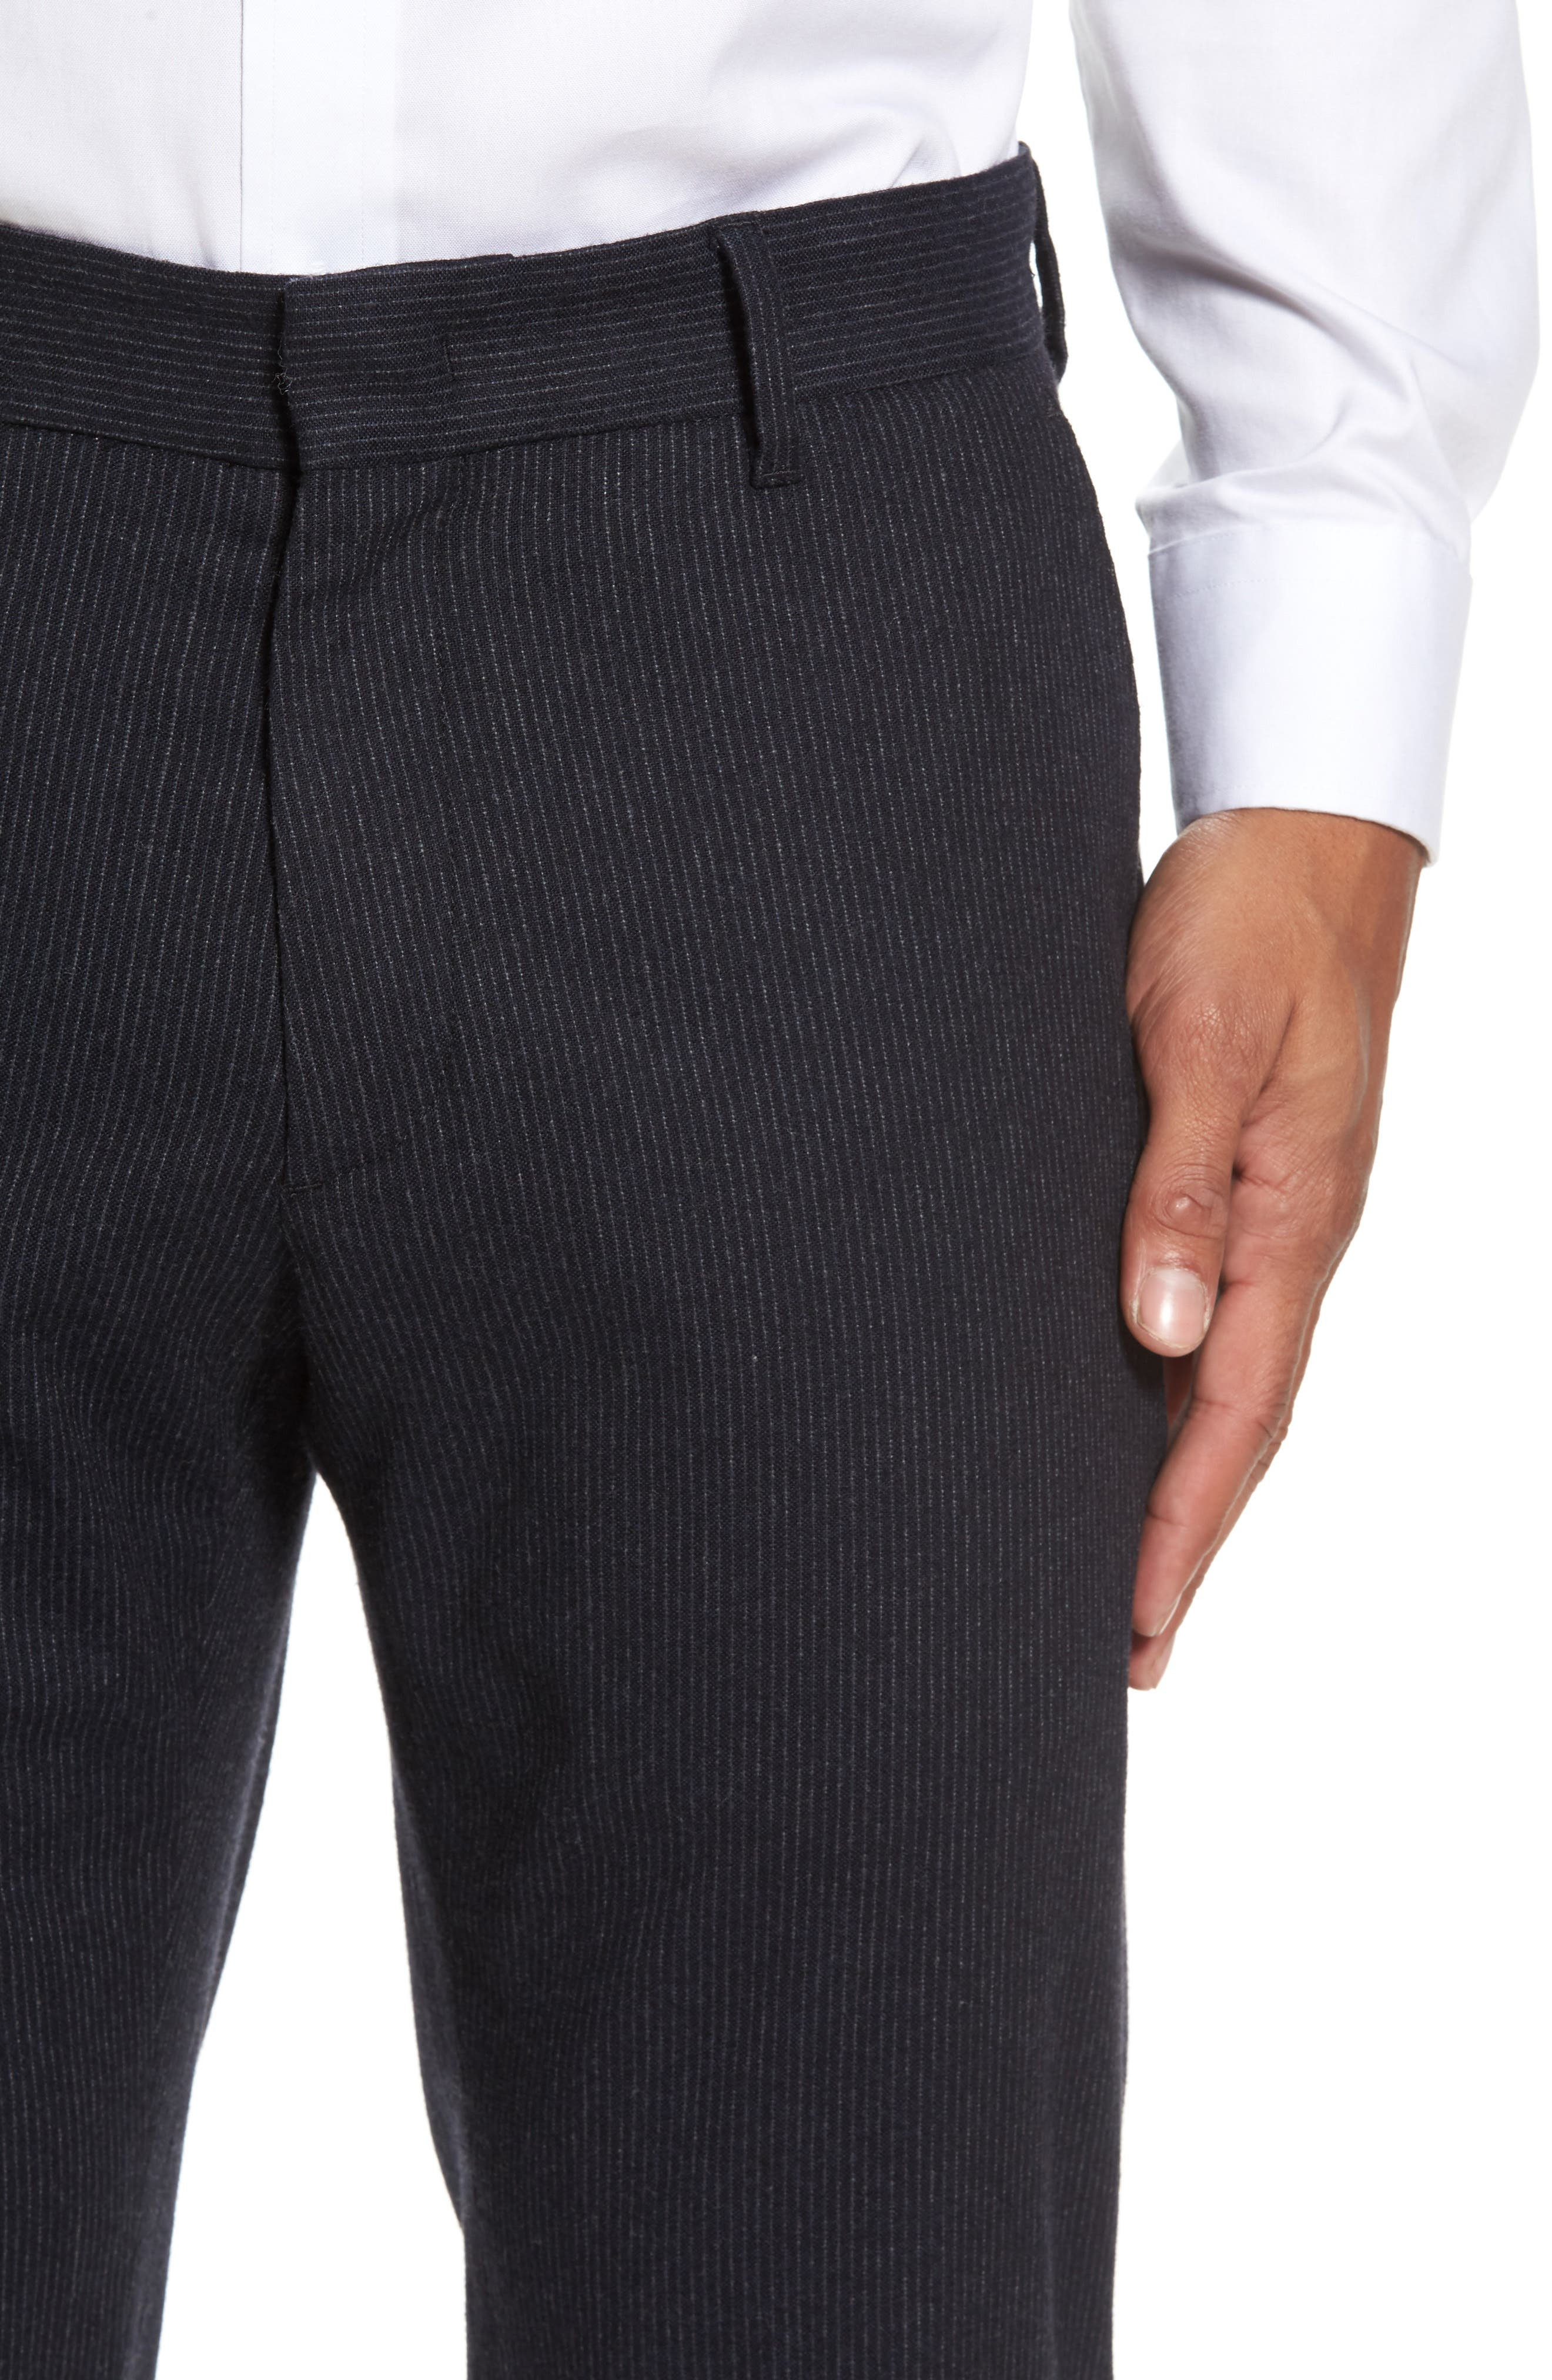 Rushmore Pinstripe Stretch Wool Blend Trousers,                             Alternate thumbnail 4, color,                             Navy